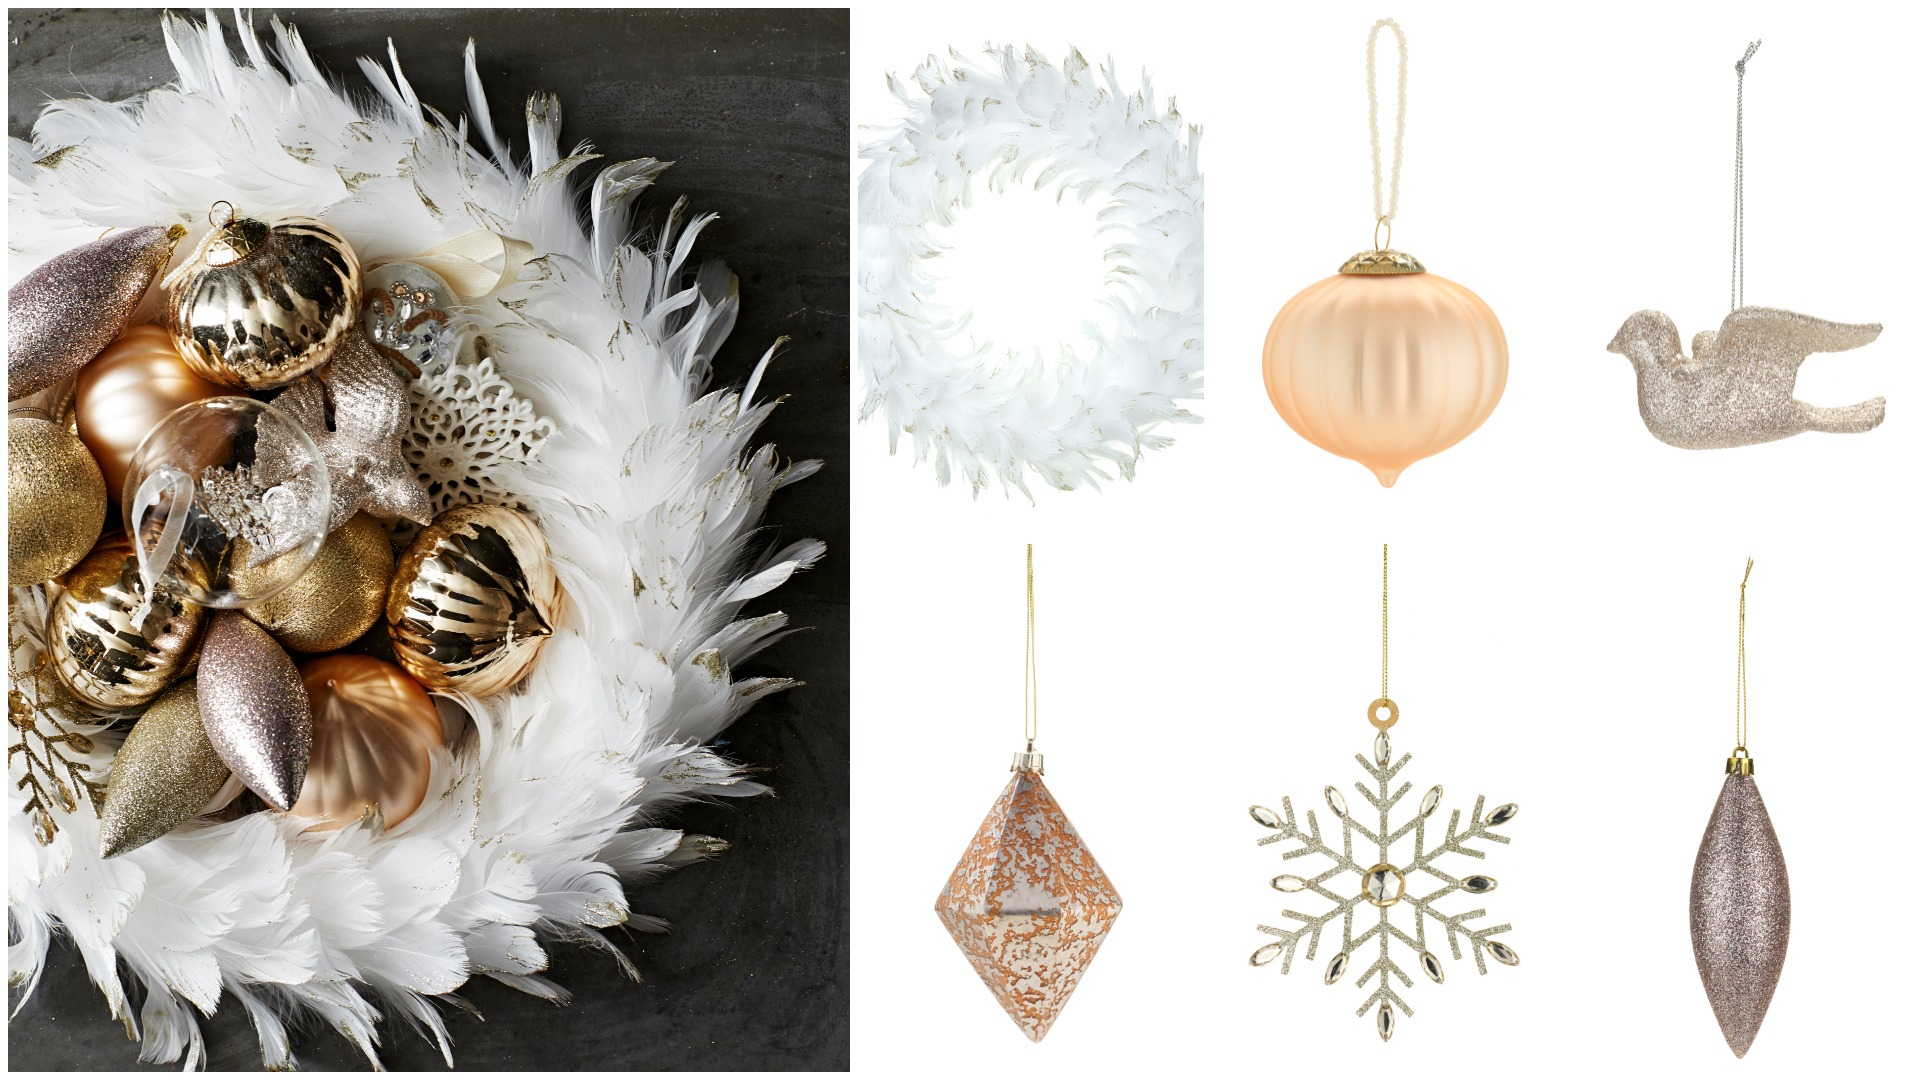 Go for modern and elegant decorations this Christmas